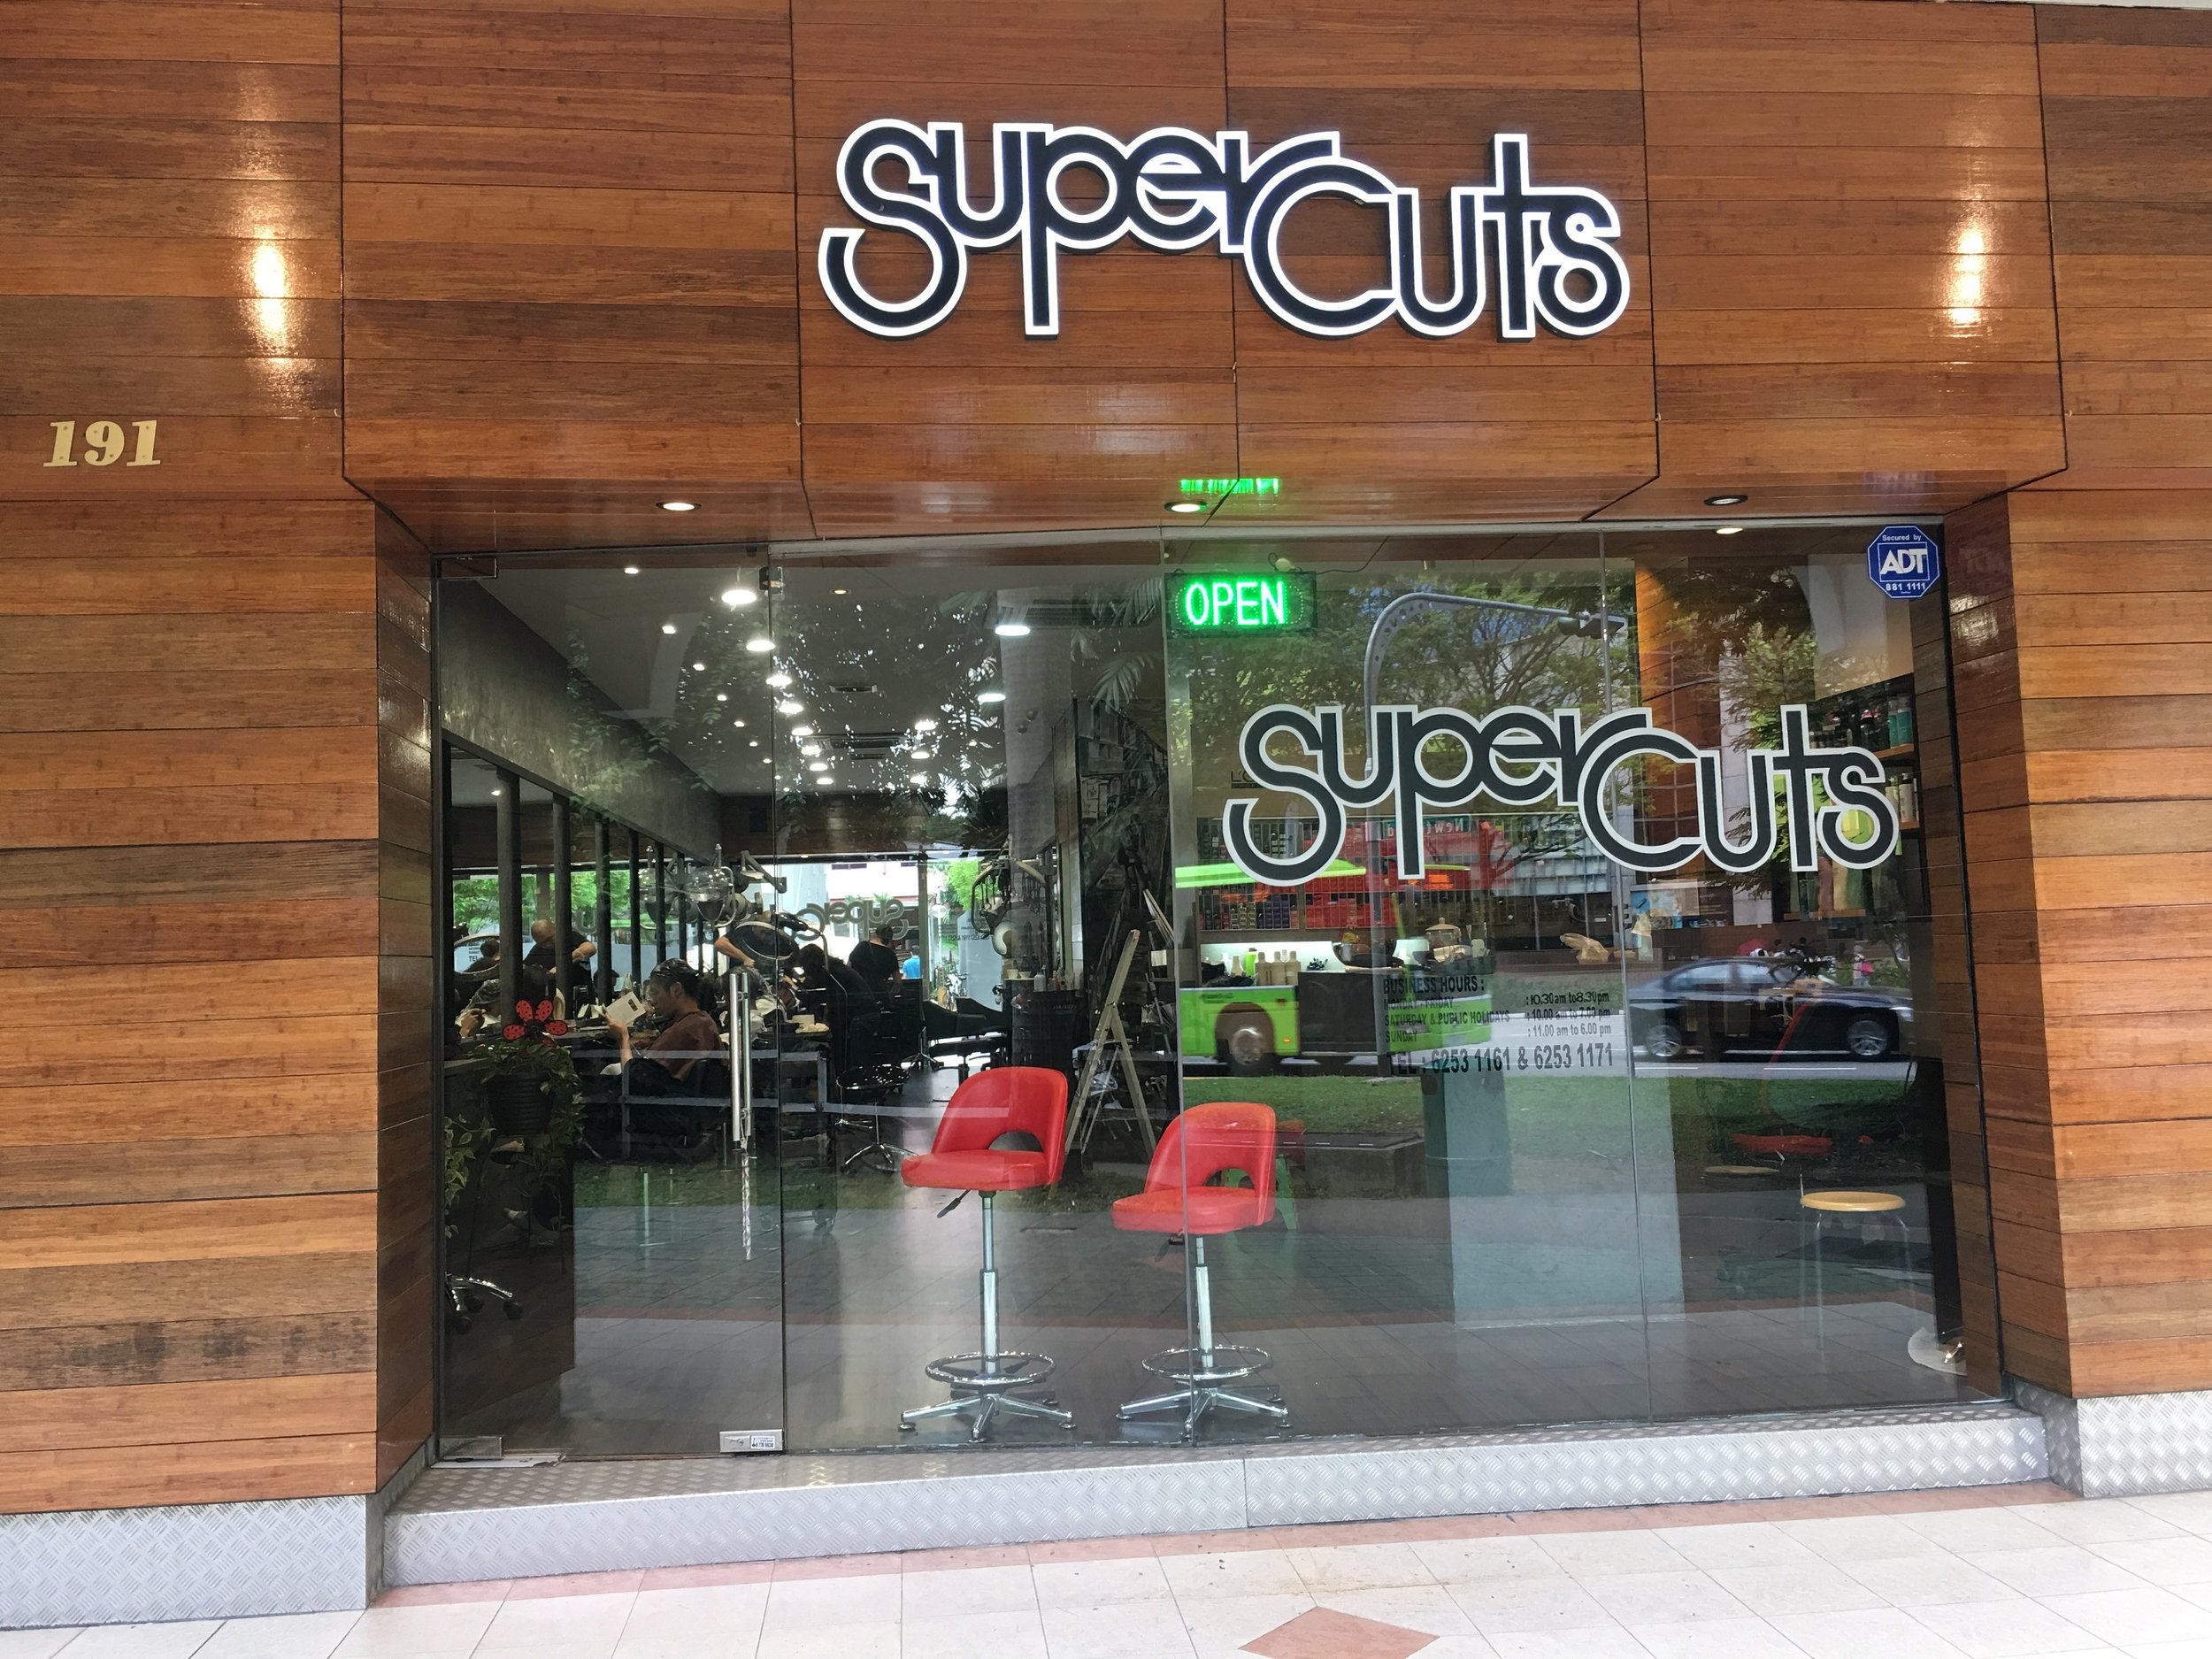 SuperCuts, 191 Thomson Road. The entrance to the Salon I ended the year 2017 with this project.